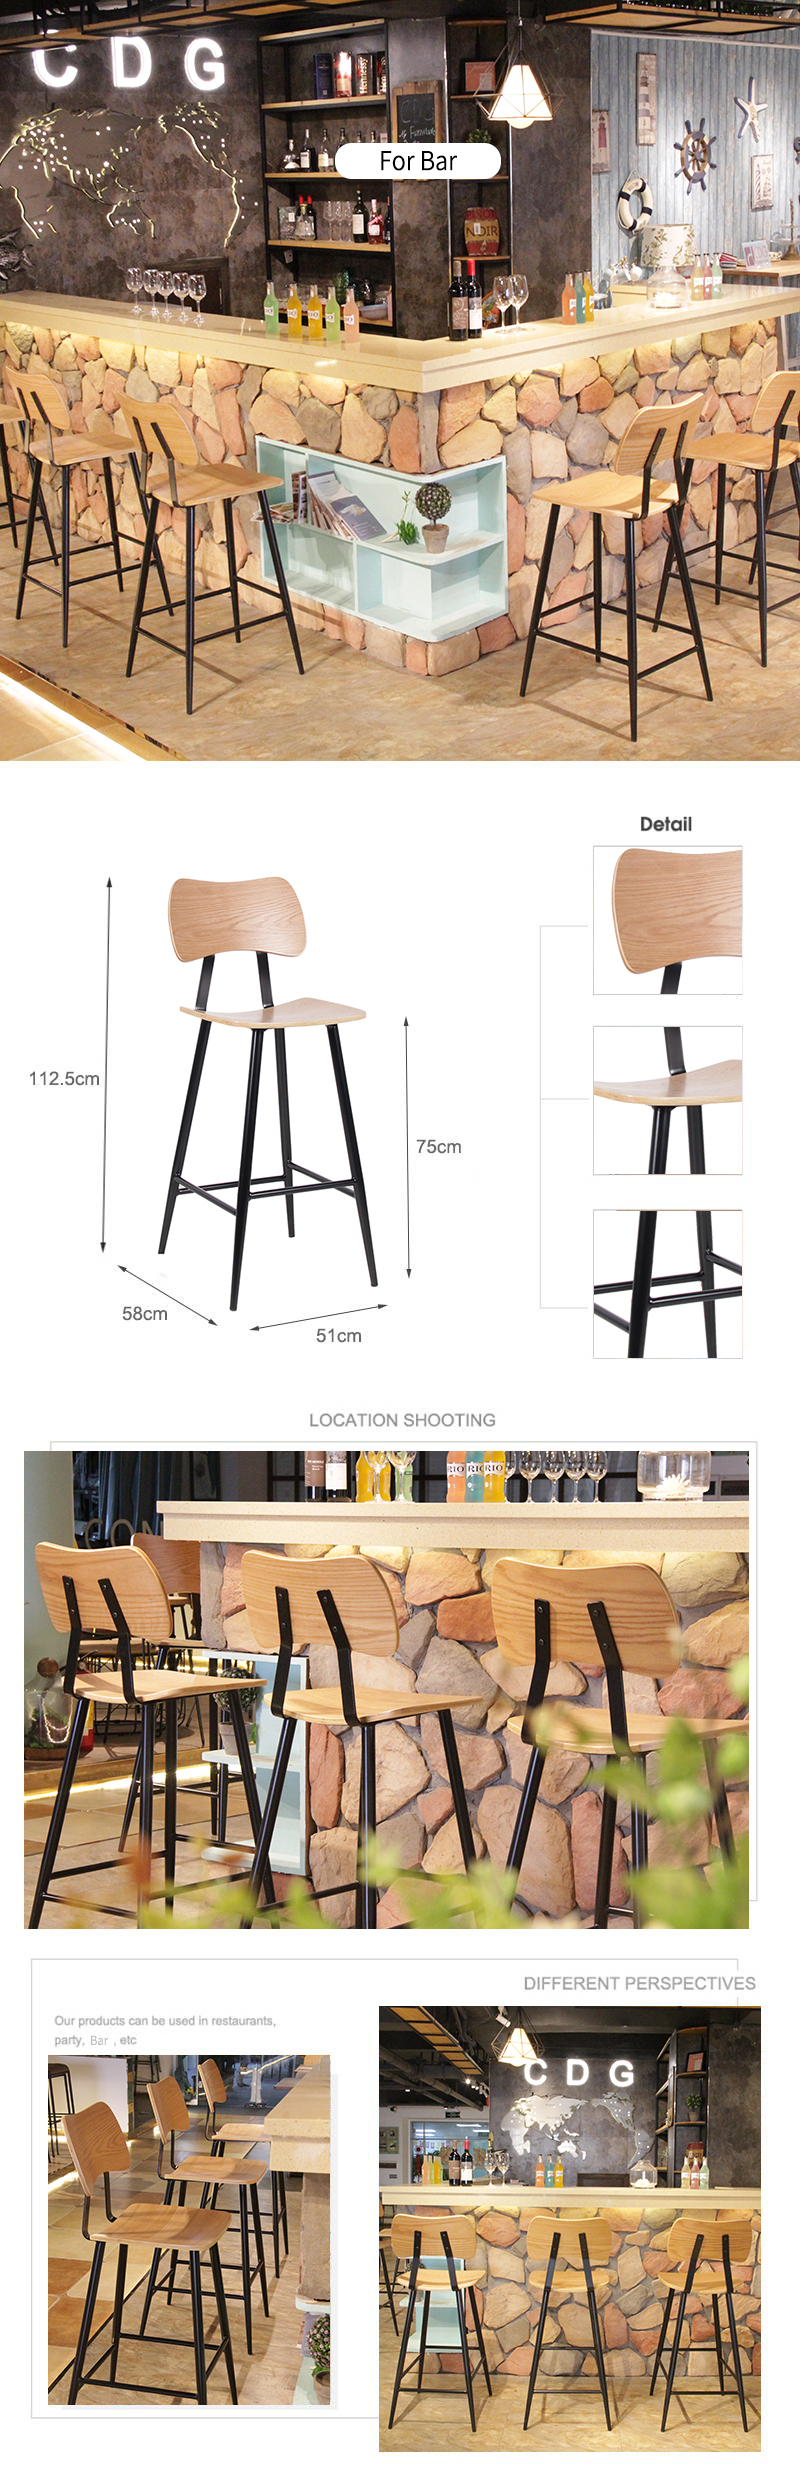 Nordic Tall Pub Household Kitchen Counter Wooden Seat Cocktail Bar Chair 741-H75-STW (1)